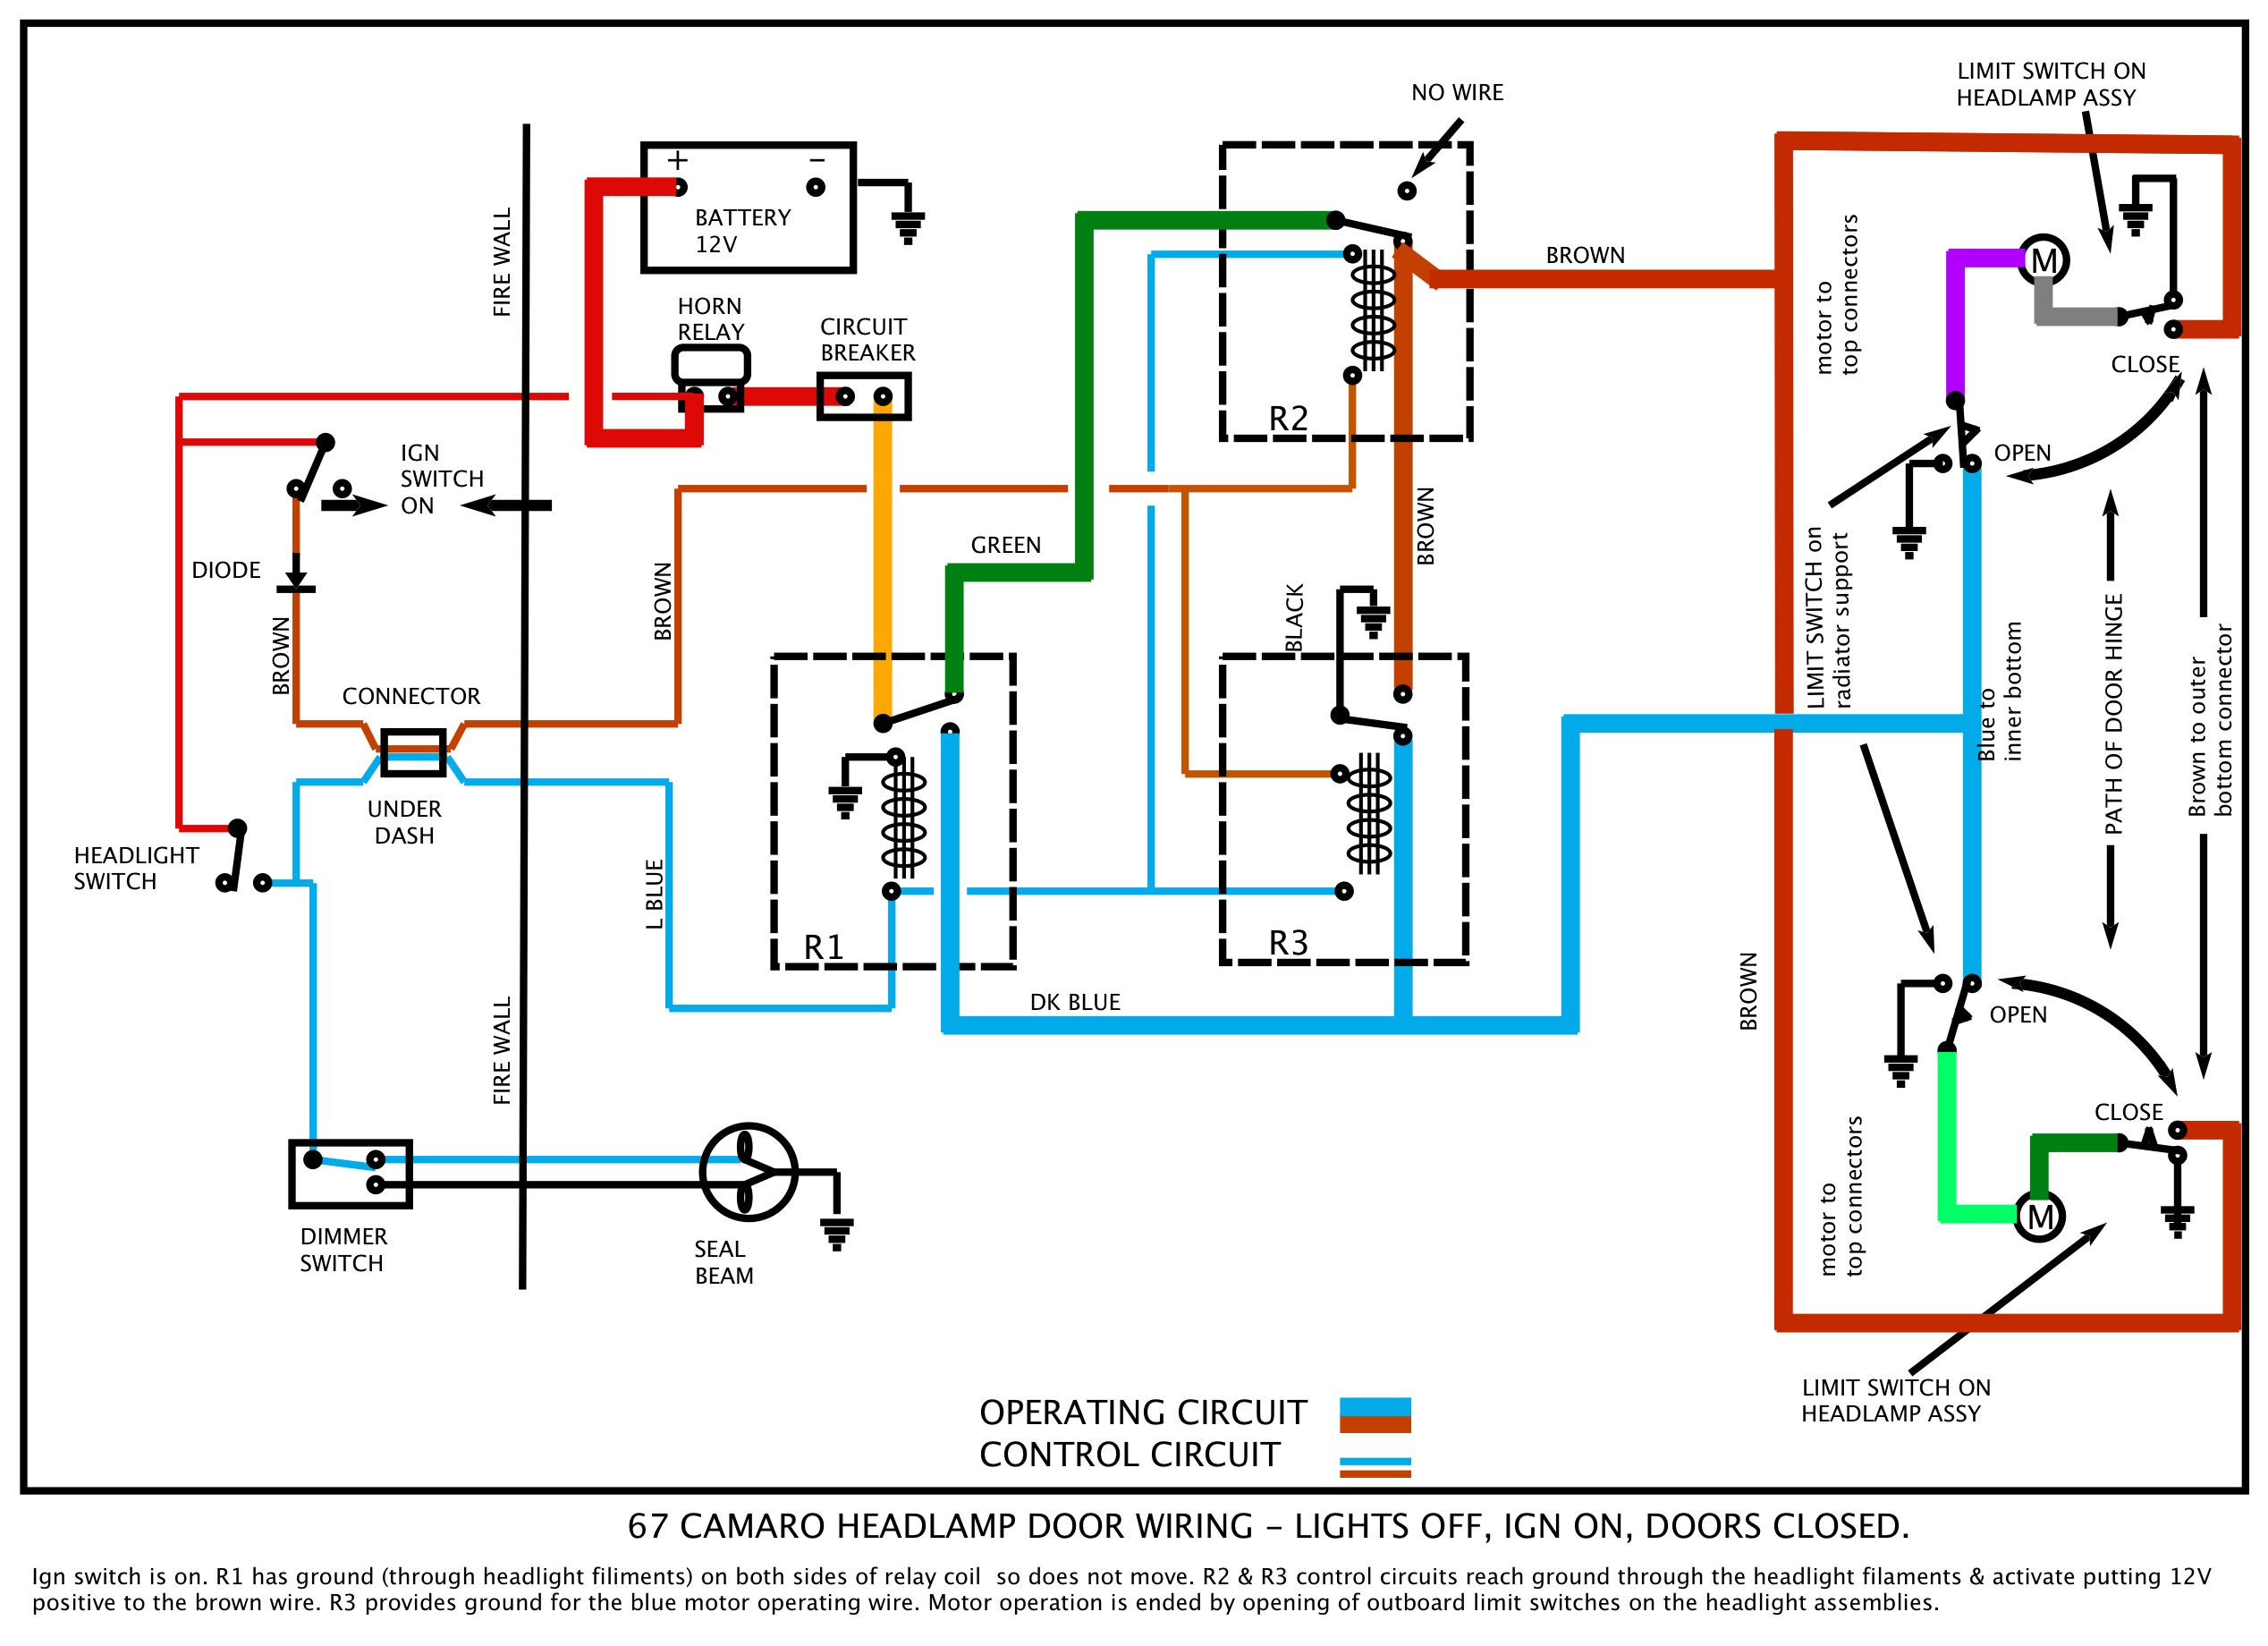 69 Mustang Ignition Switch Wiring Harness Library 1989 Engine Diagram 1967 Camaro Alternator Free Download Experts Of Rh Evilcloud Co Uk 1966